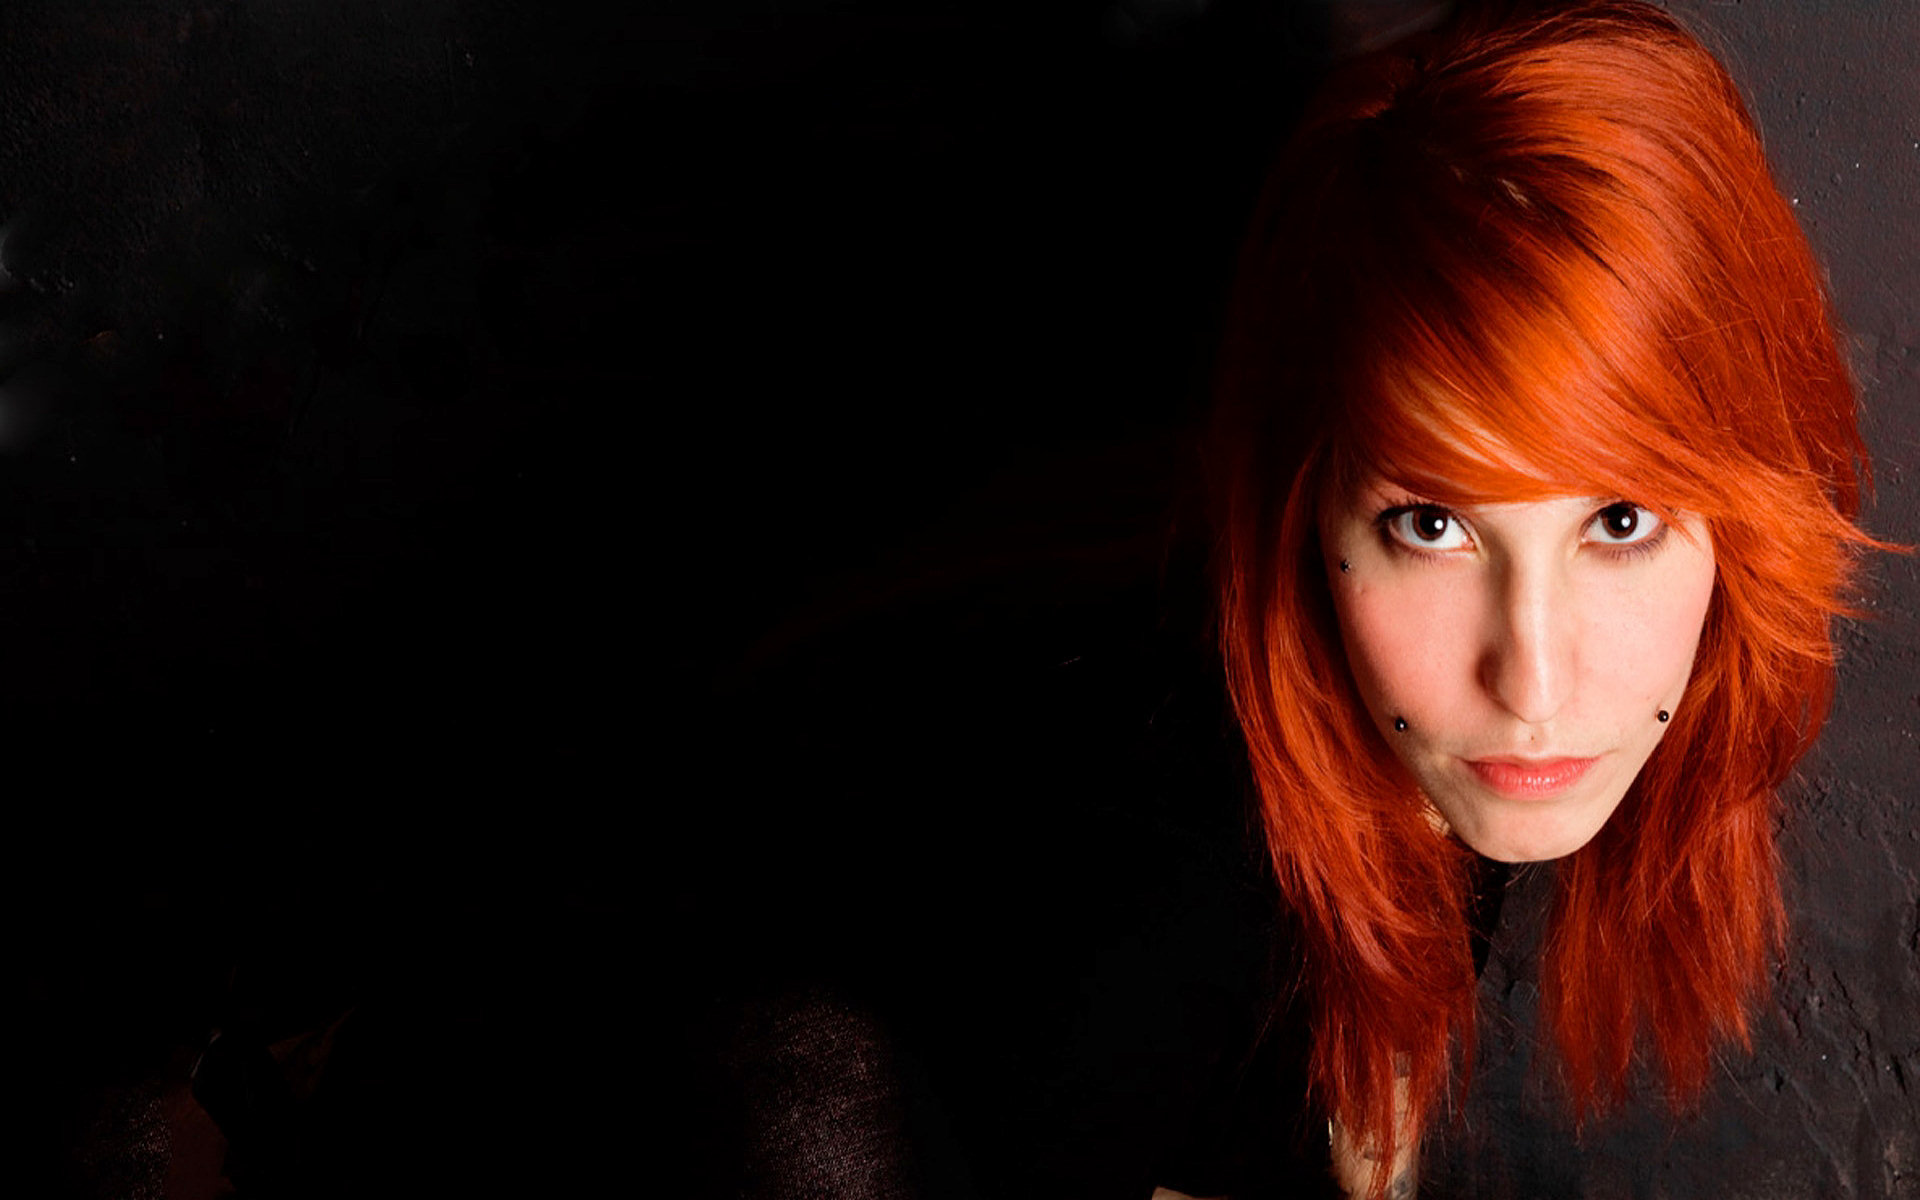 Redhead Full HD Wallpaper and Background Image | 1920x1200 ...